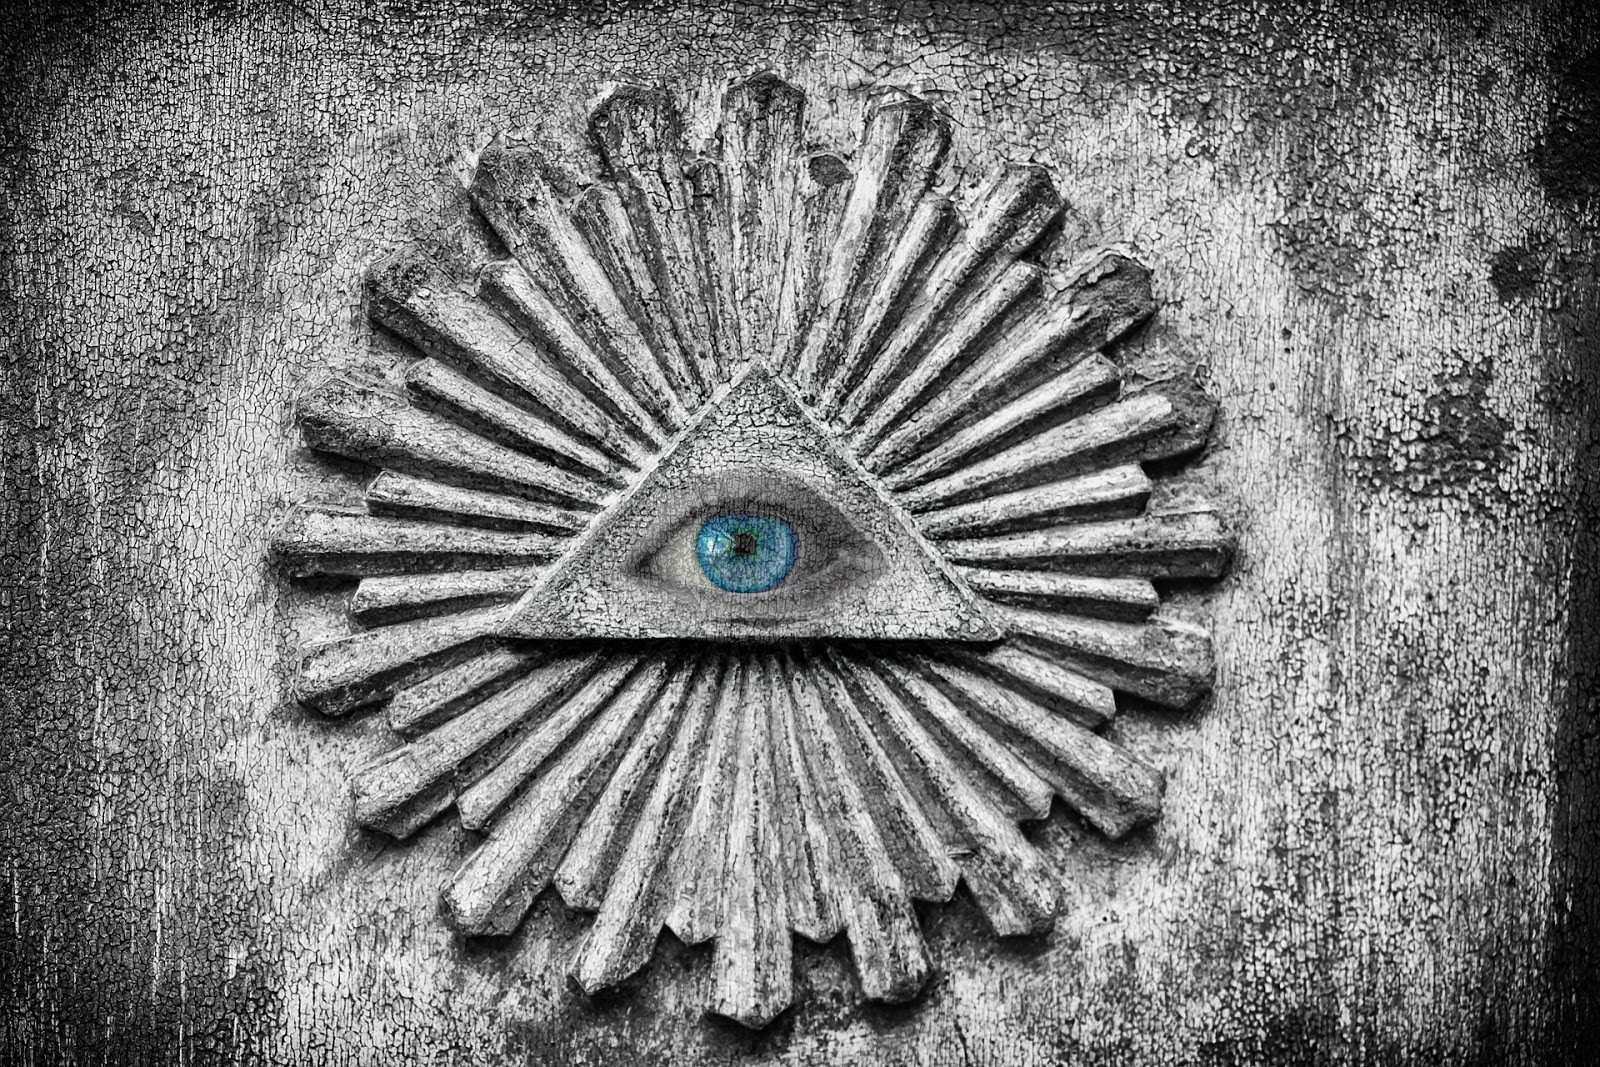 The Illuminati adopted the all-seeing eye as a symbol